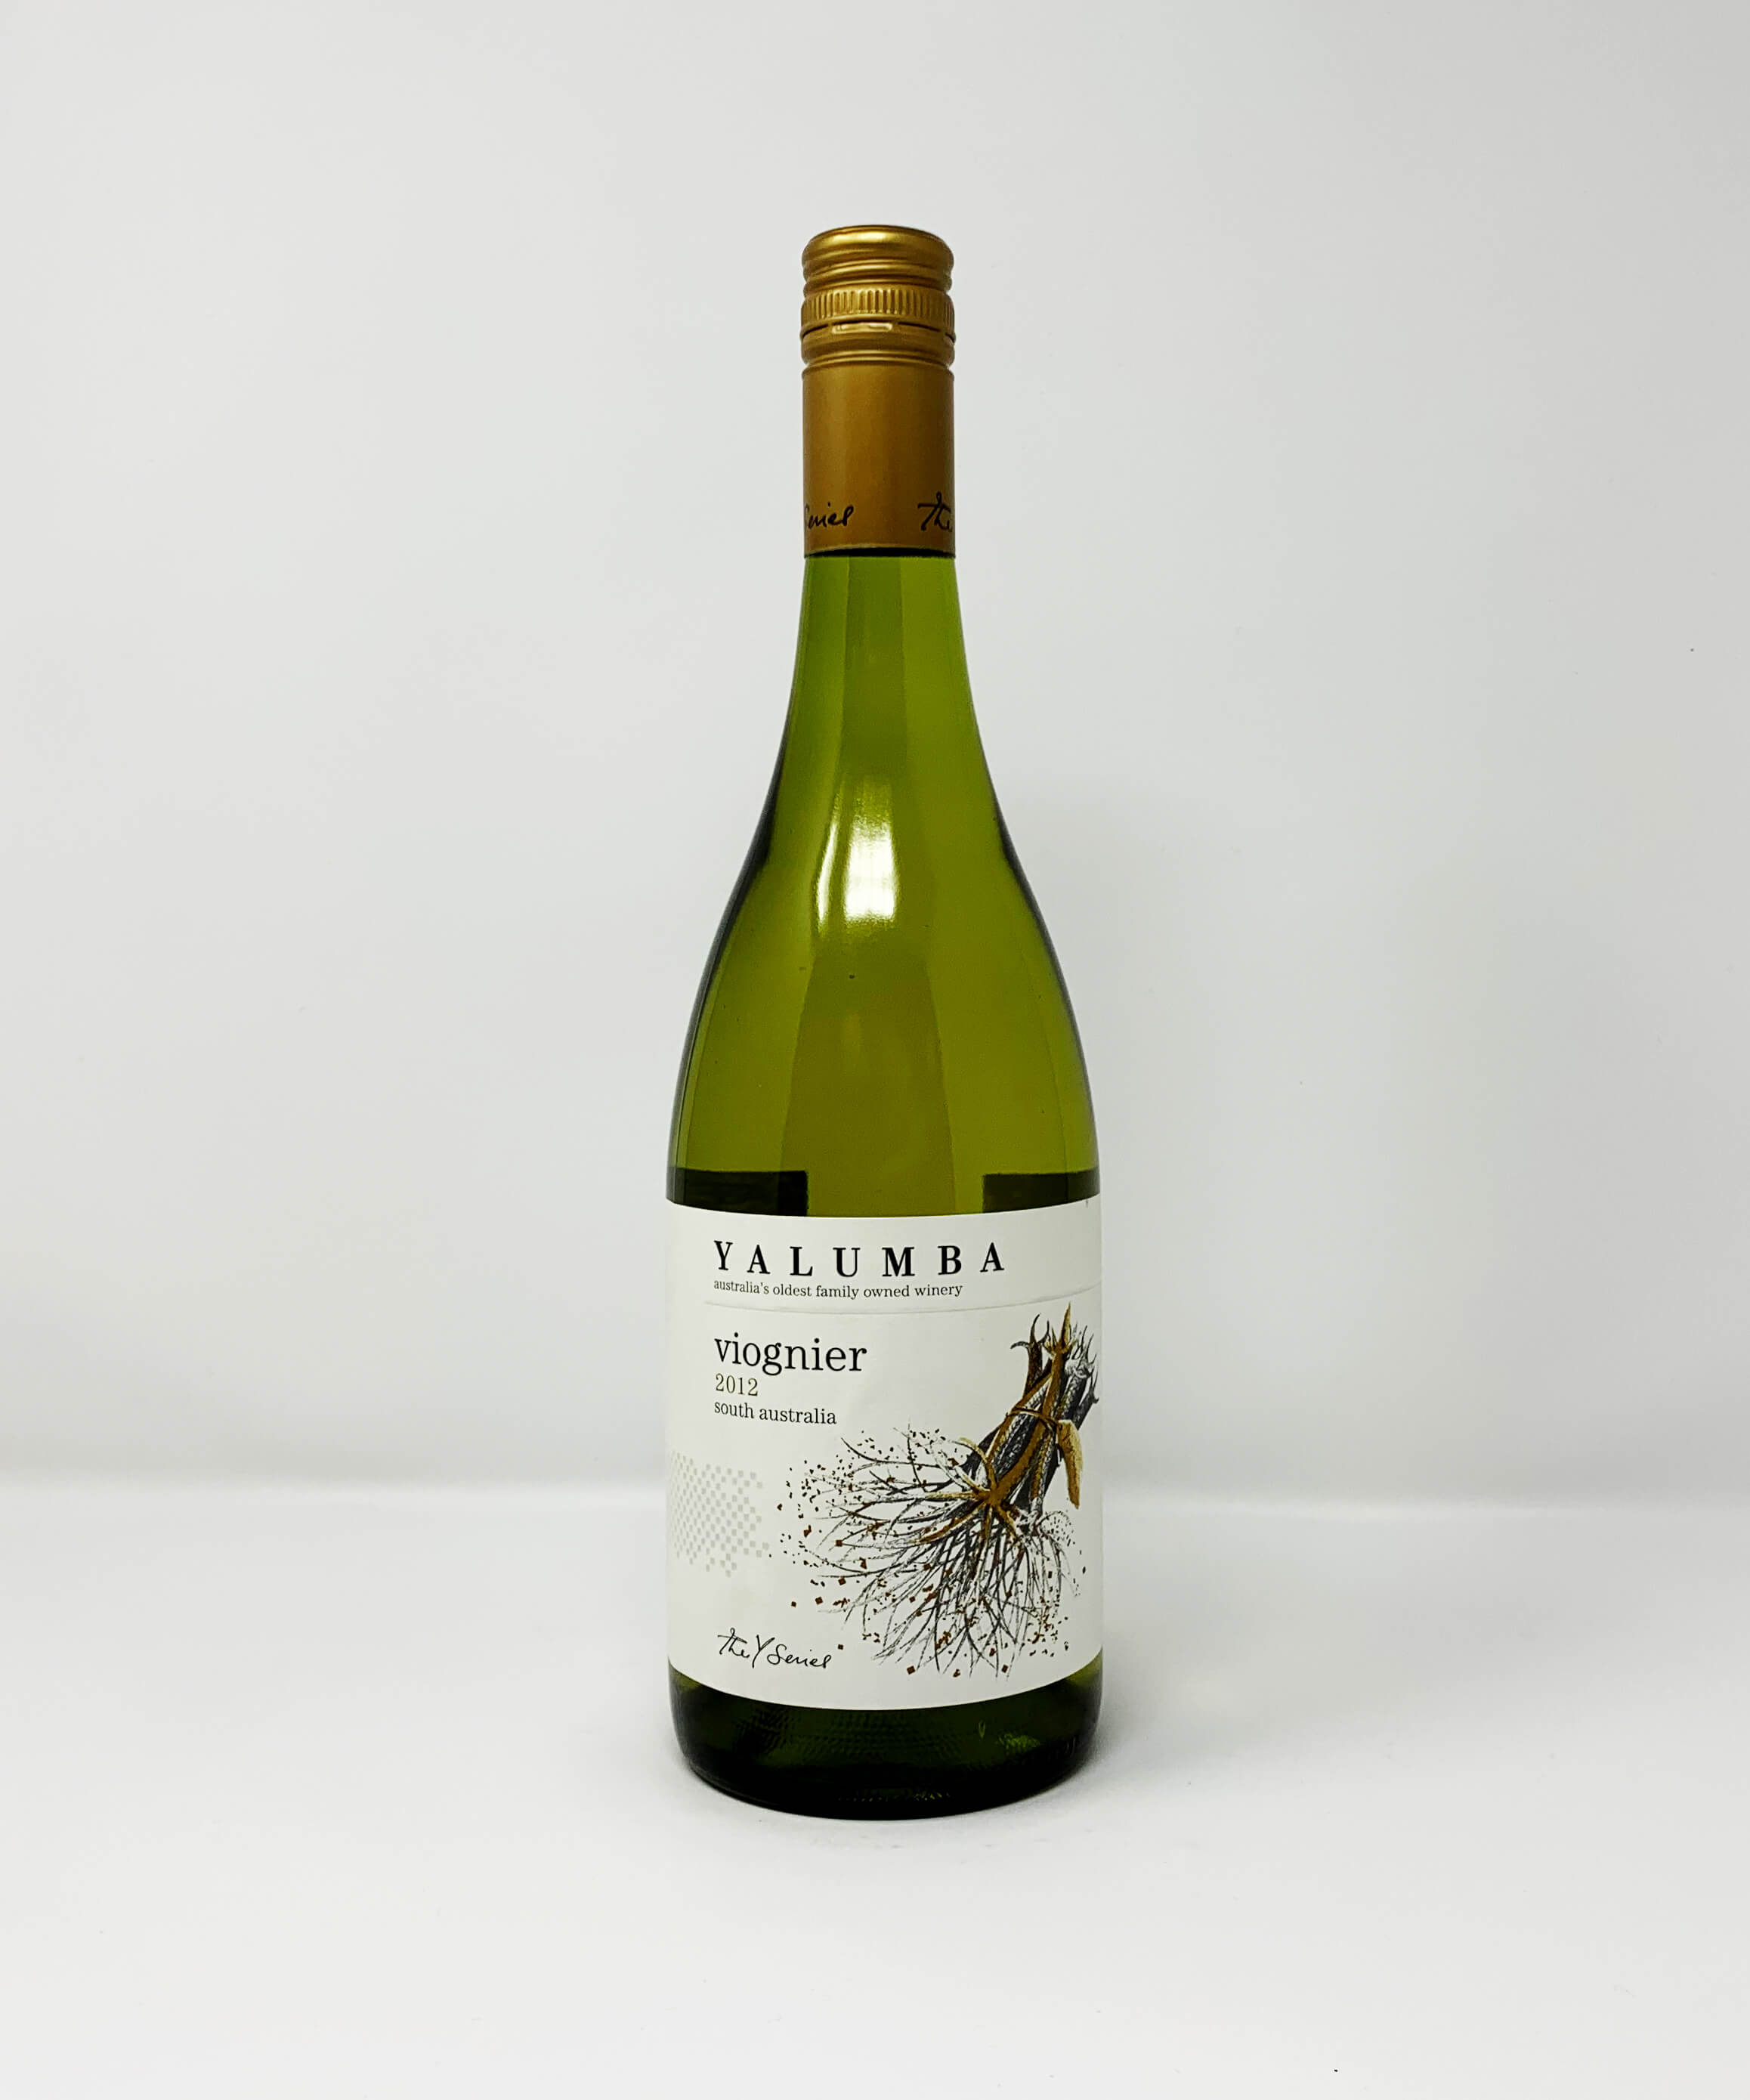 Yalumba, Y-series Viognier